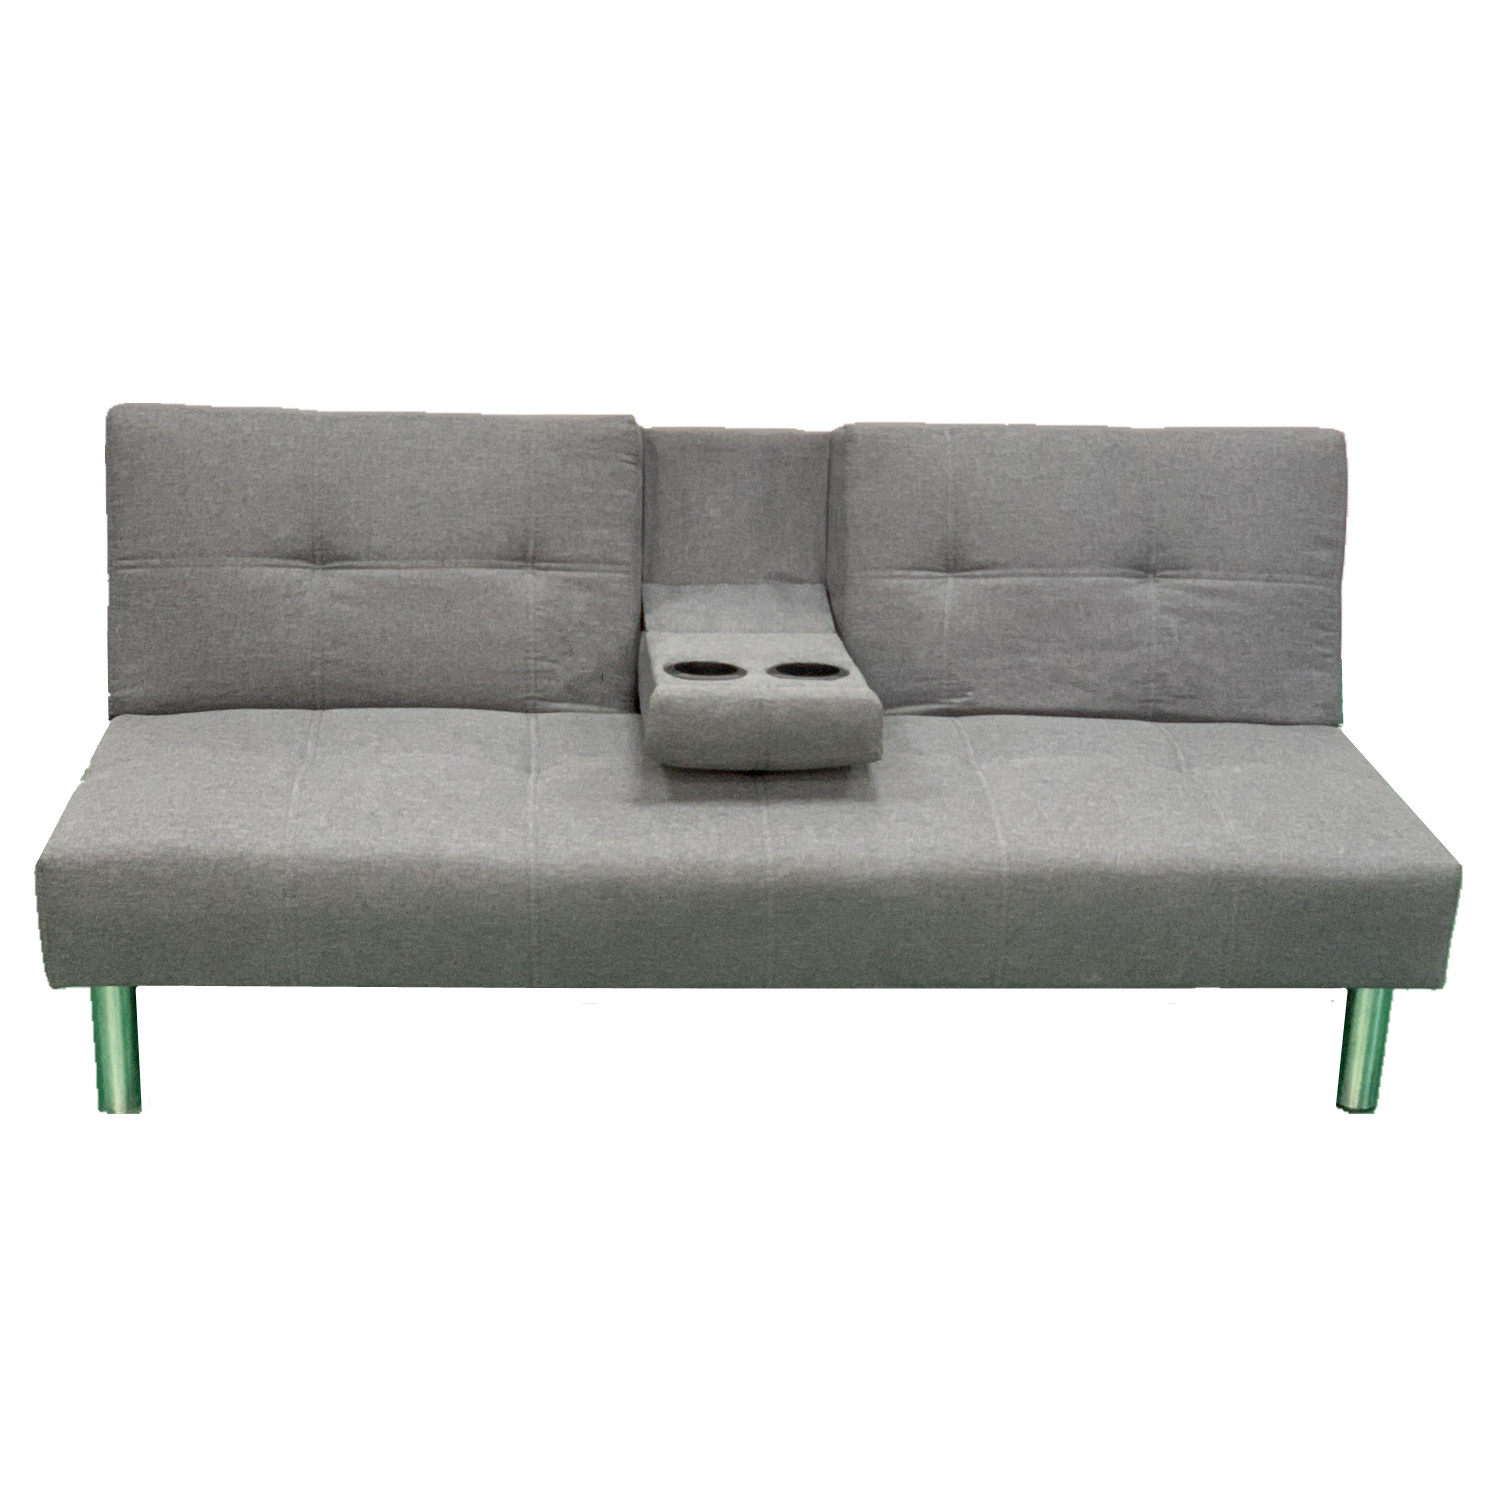 Grey Cushioned Convertible Sofa Bed Living Room Relaxing Couch BTC1718